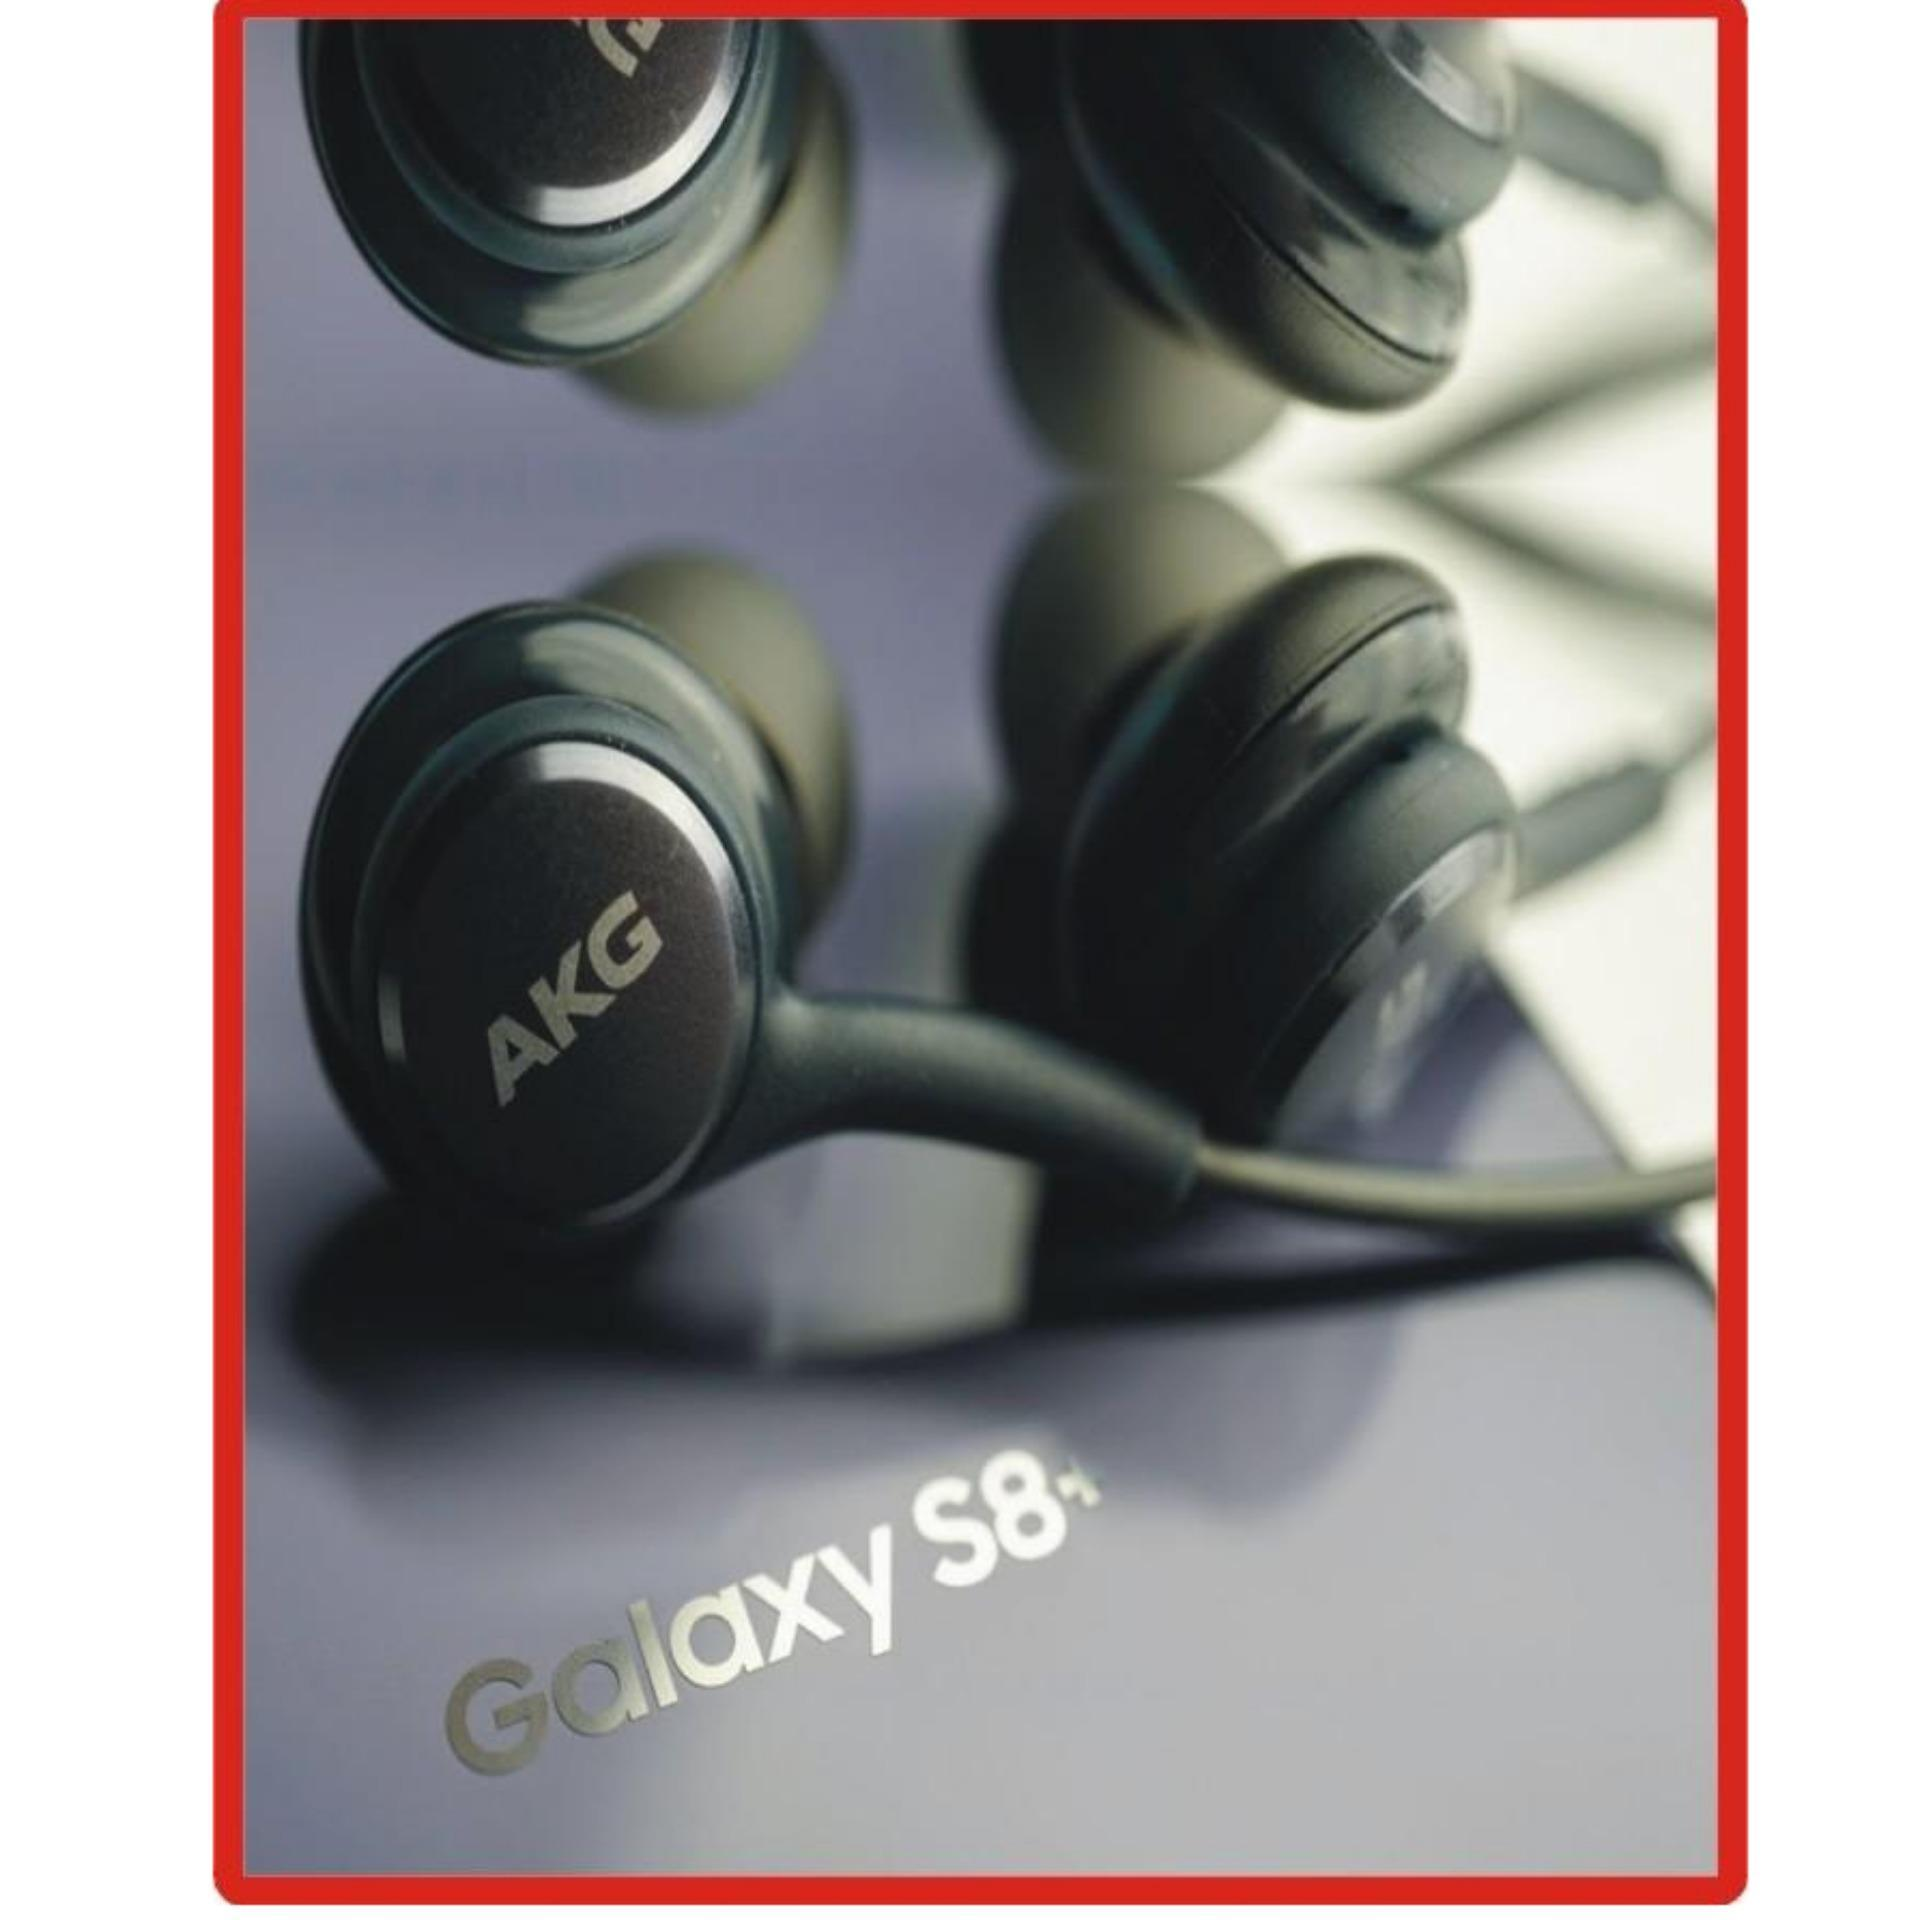 Mobile Headsets Earphones Online In Pakistan Earphone Headset Asus Stereo Oem S8 Akg Titanium Earpods Hq Sound Handfree With Remote And Mic